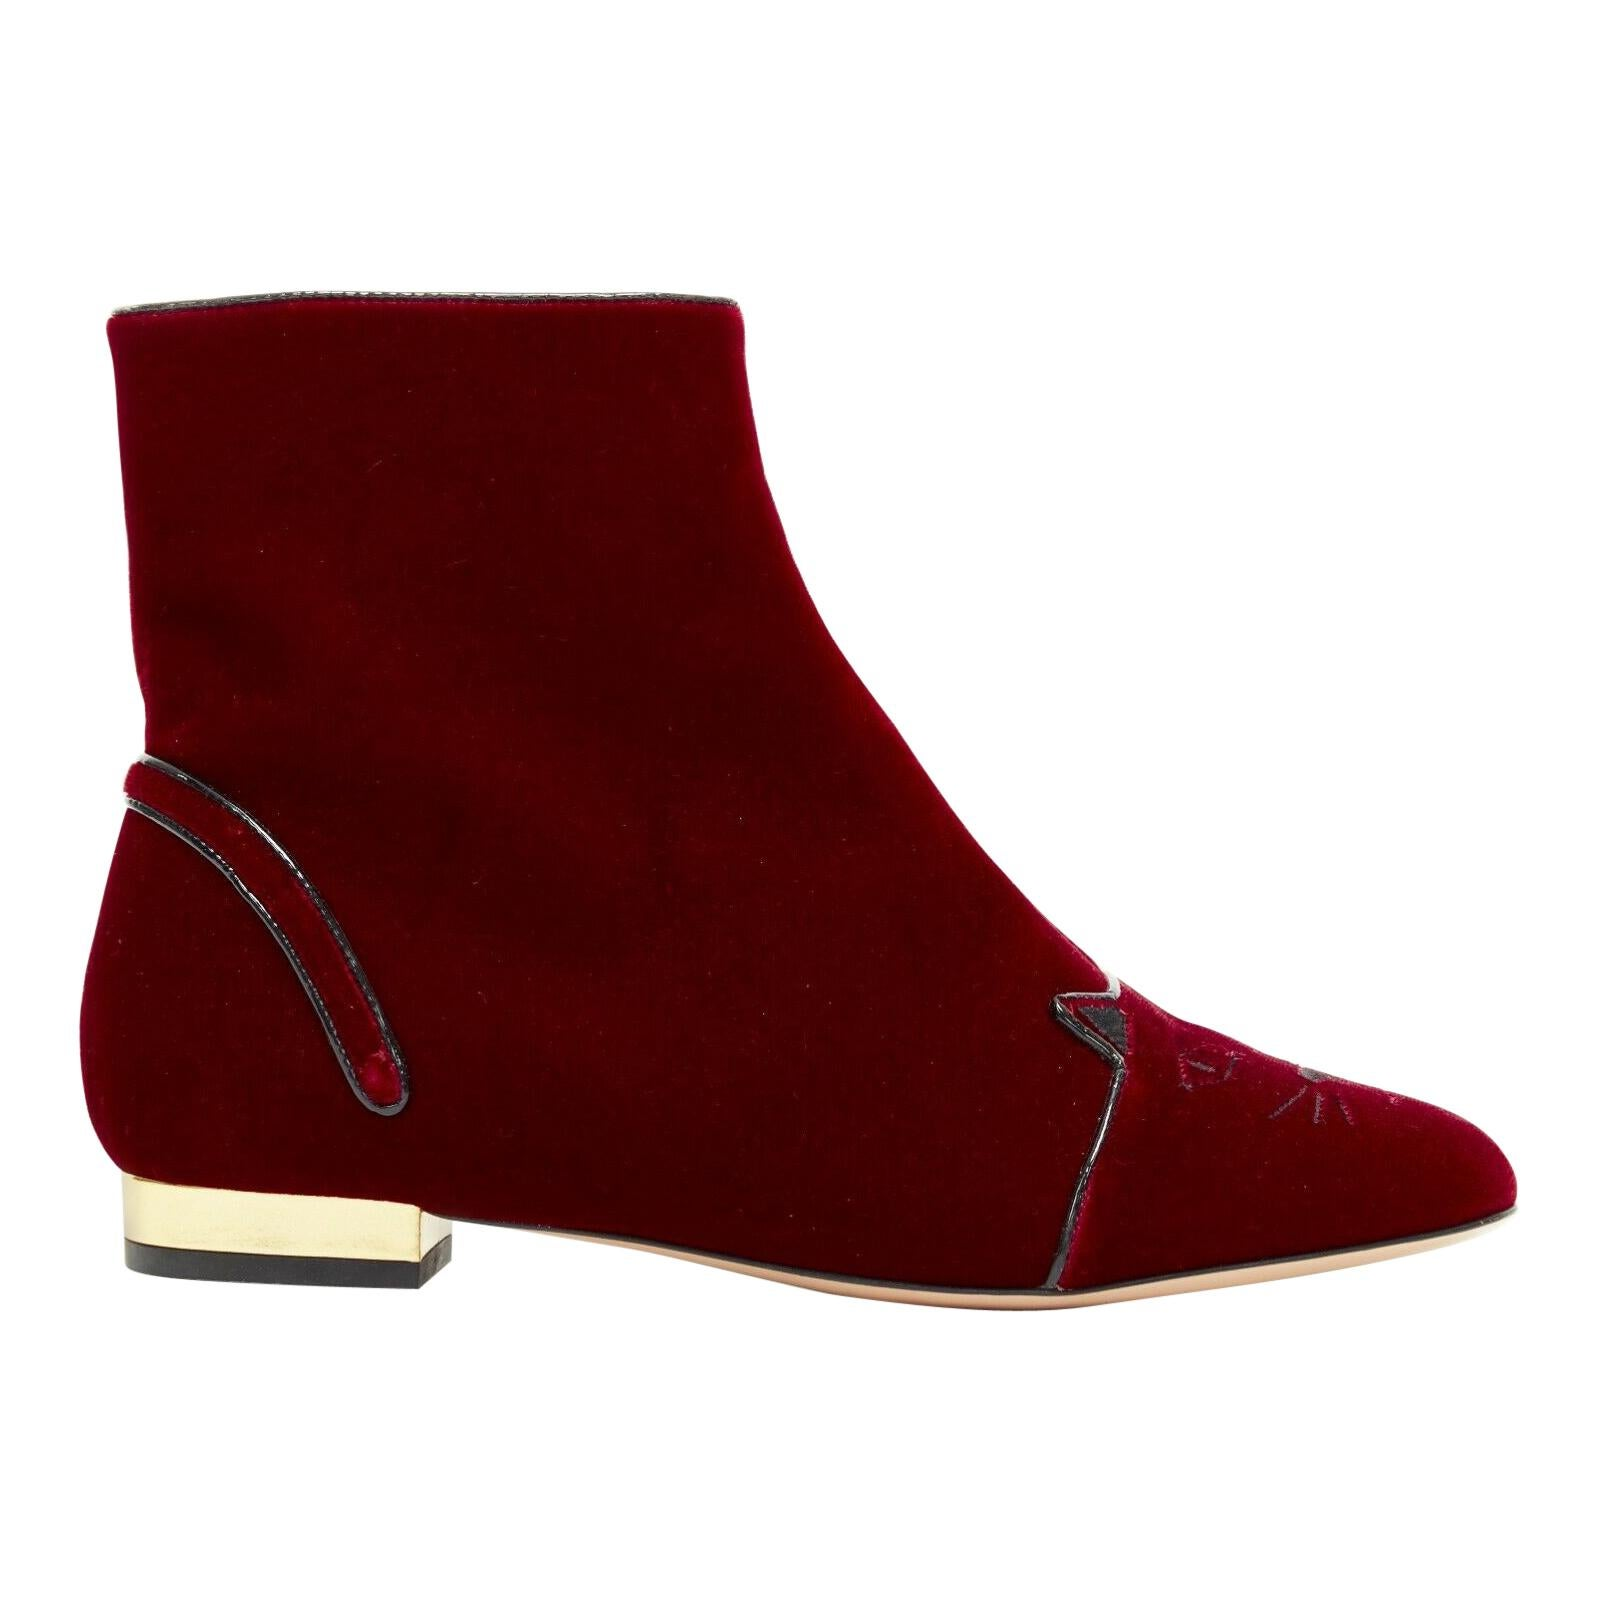 new CHARLOTTE OLYMPIA red Velvet Puss kitty embroidery flat ankle boot EU37.5